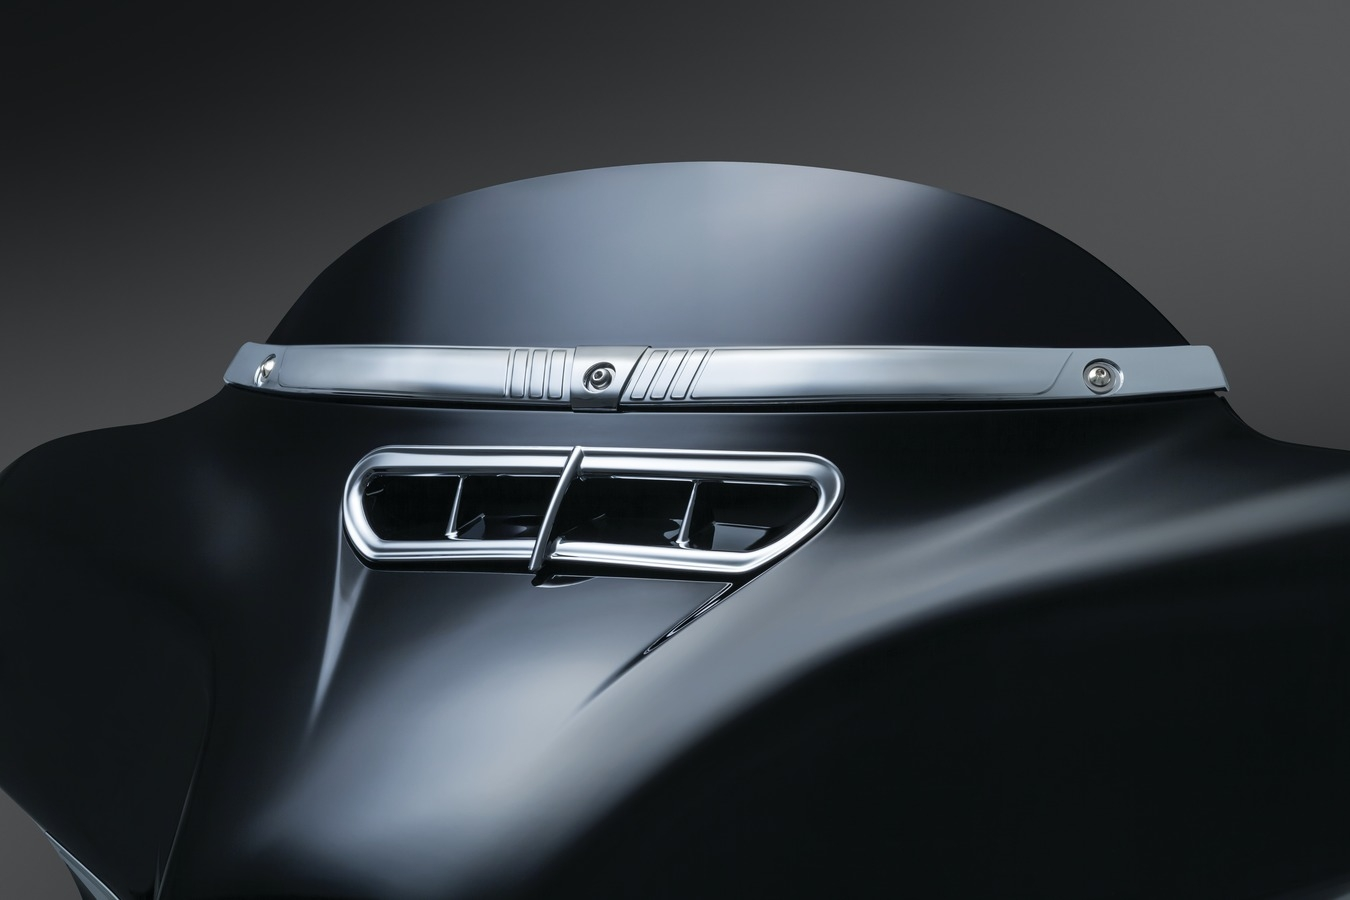 Fairing Vent - Chrome Trim Accent for 2014-Up Touring & Trike